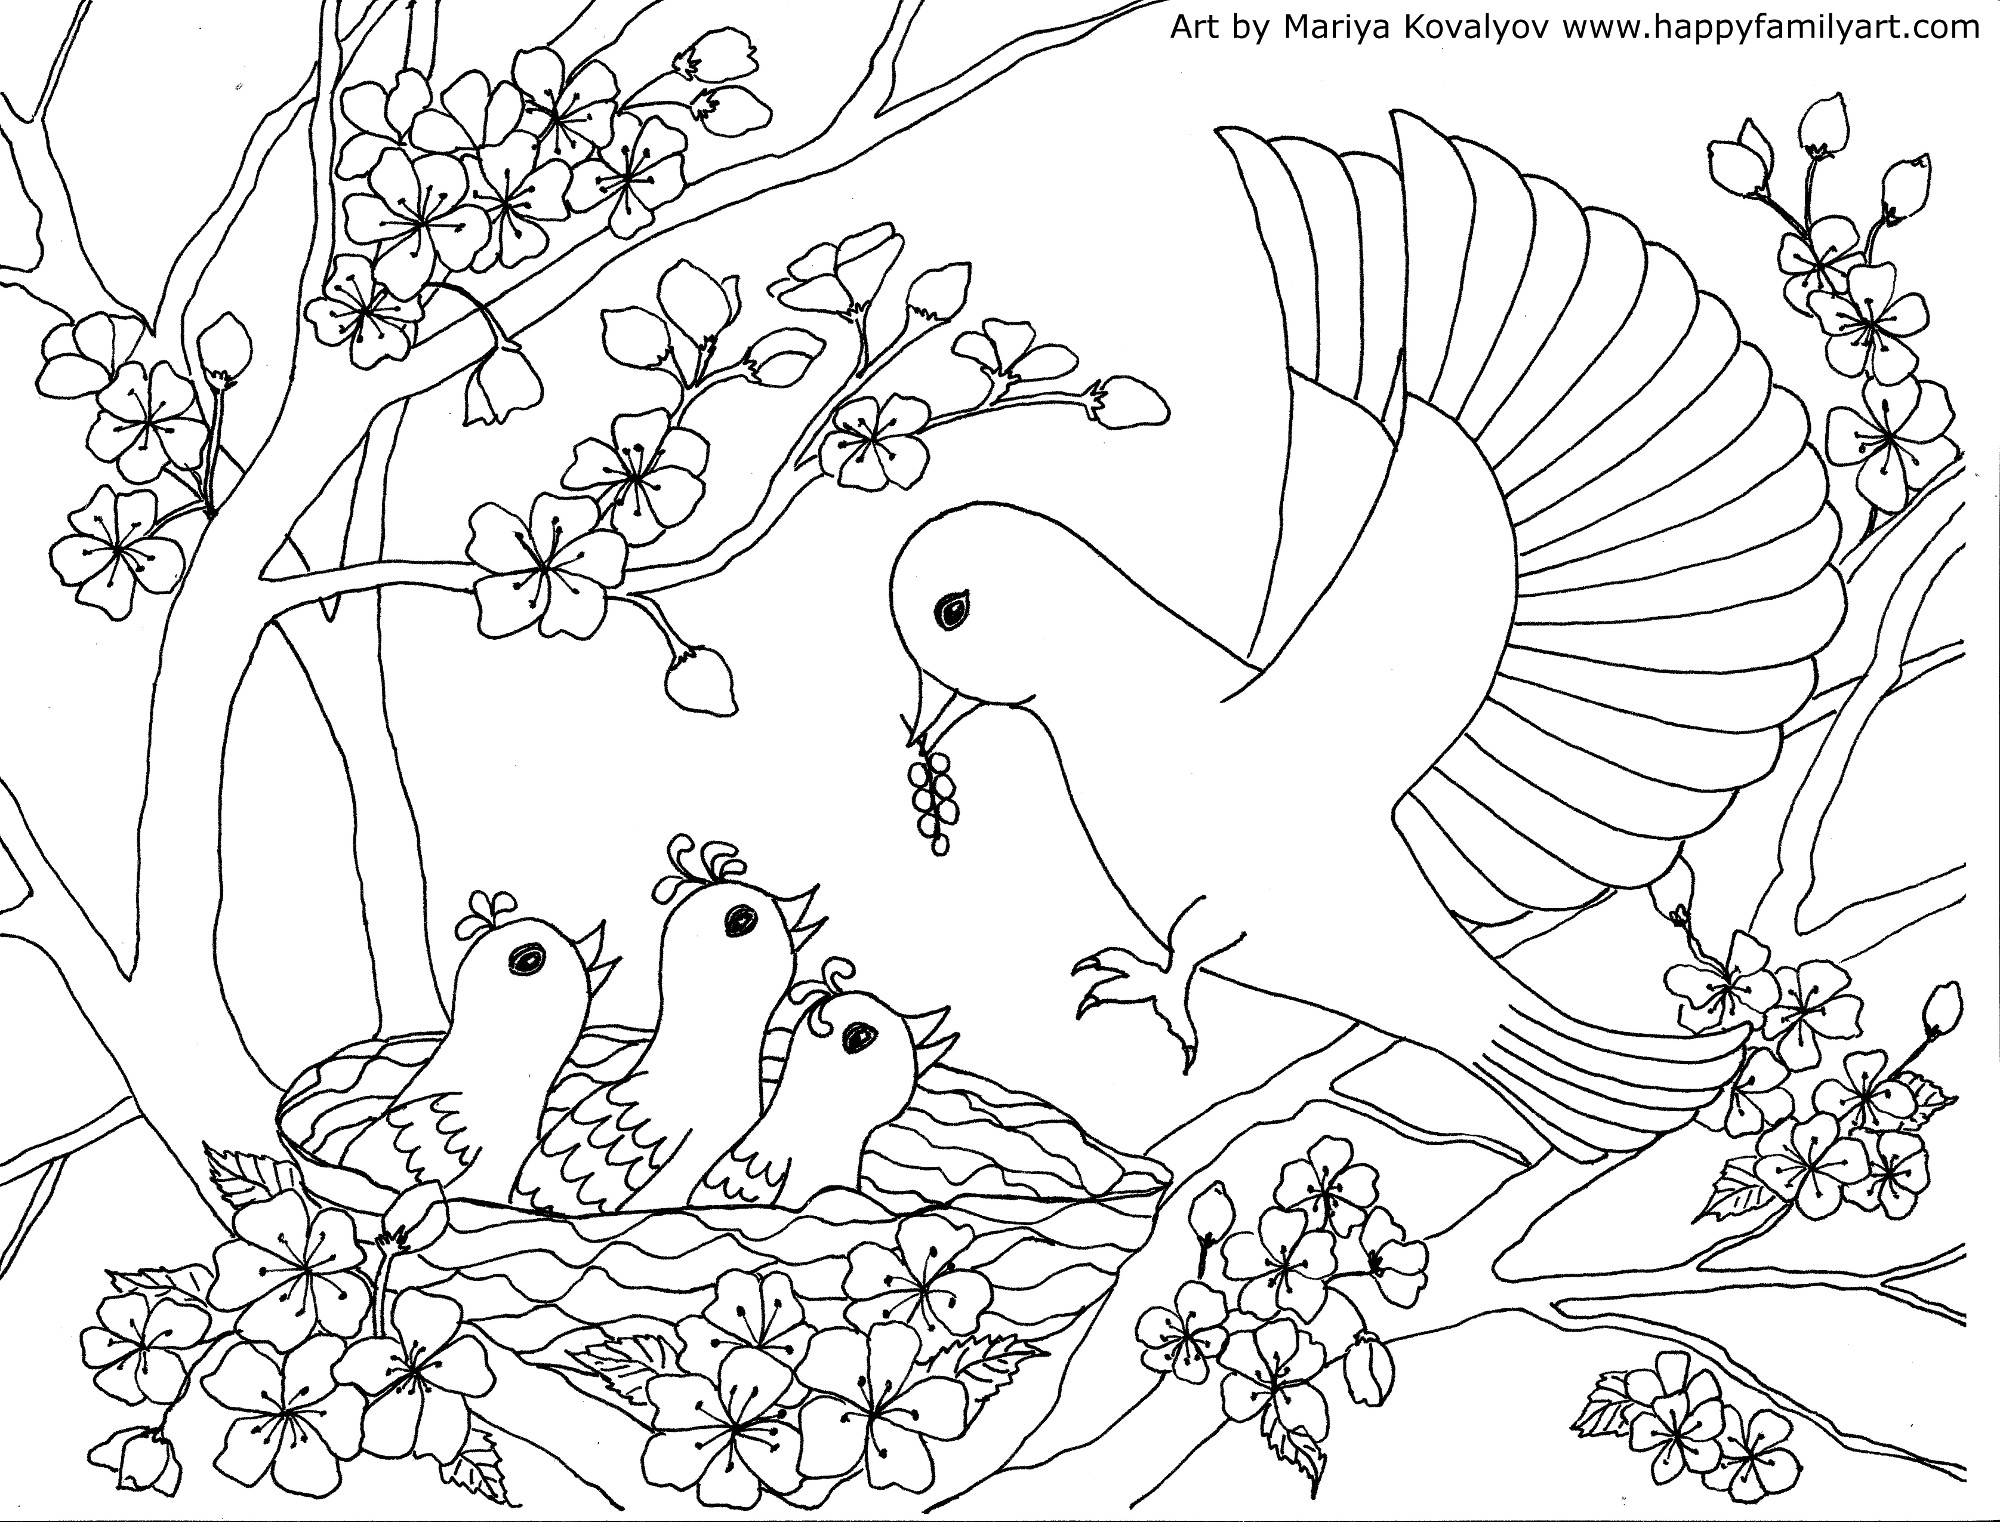 coloring pictures birds birds coloring page happy family art birds pictures coloring